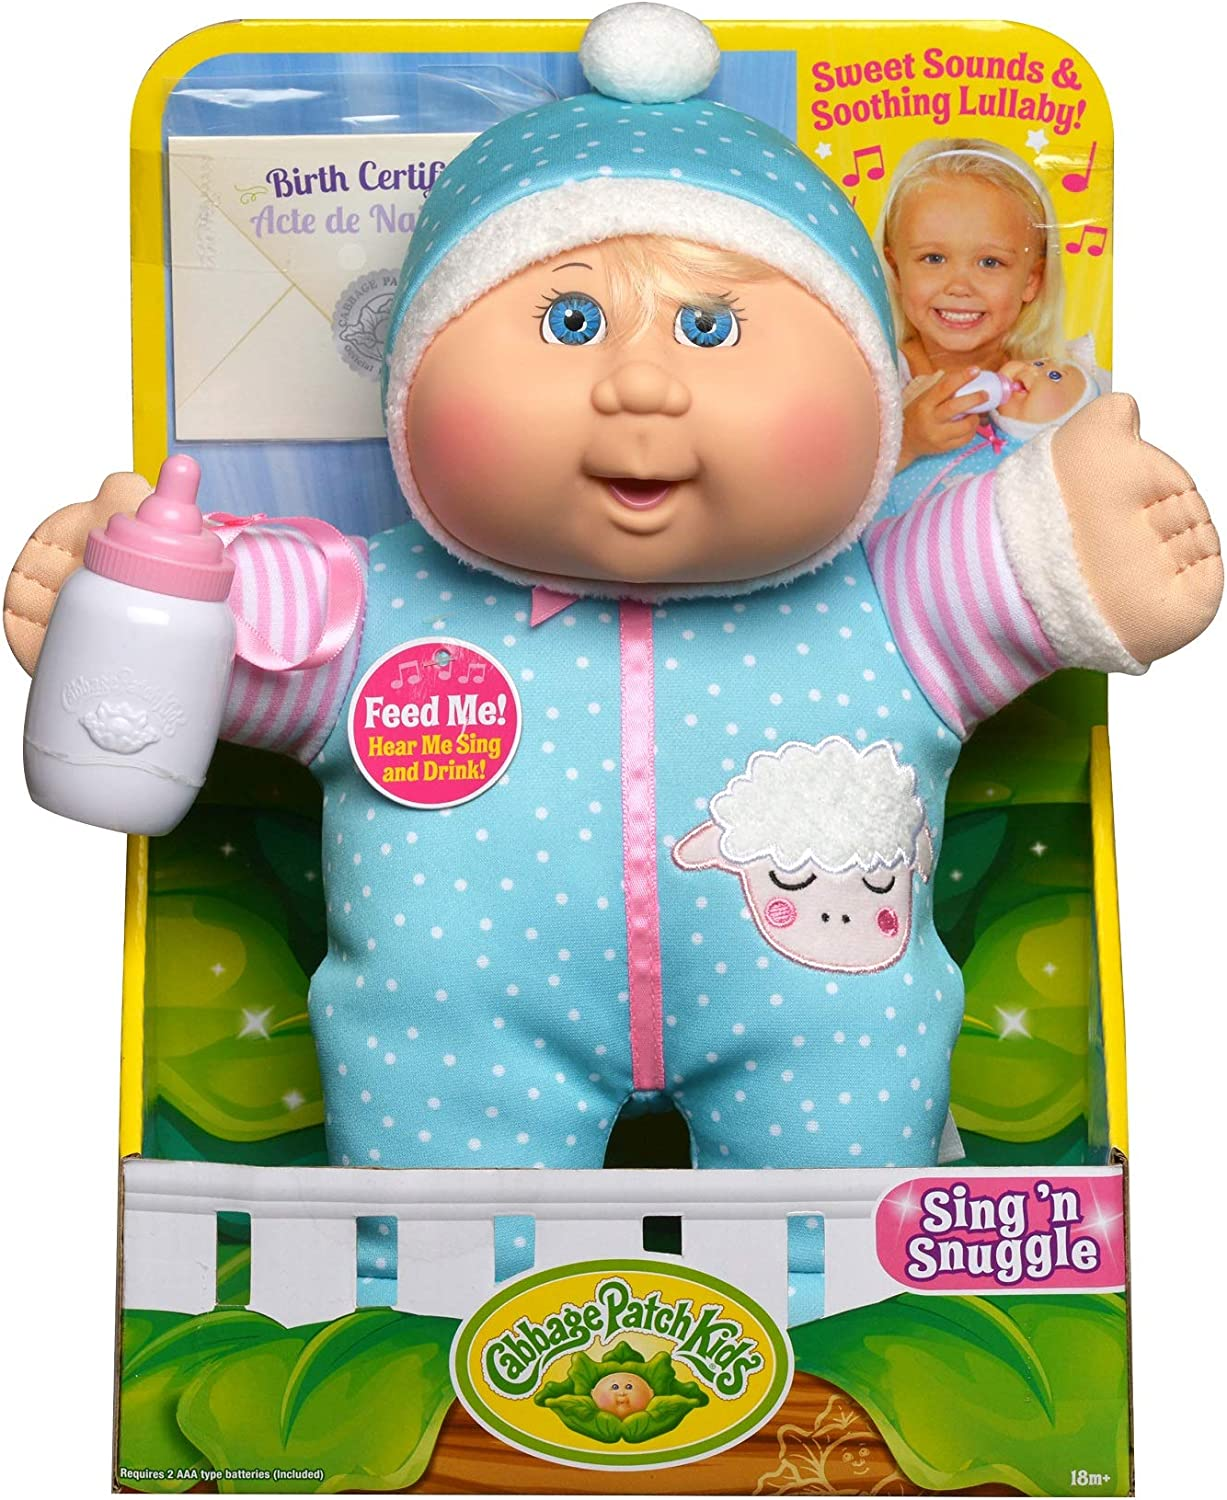 """Cabbage Patch Kids Electronic 11"""" Deluxe Sing N' Snuggle - Blonde Girl/Blue Eyes, Multi, (Model: 38736)"""